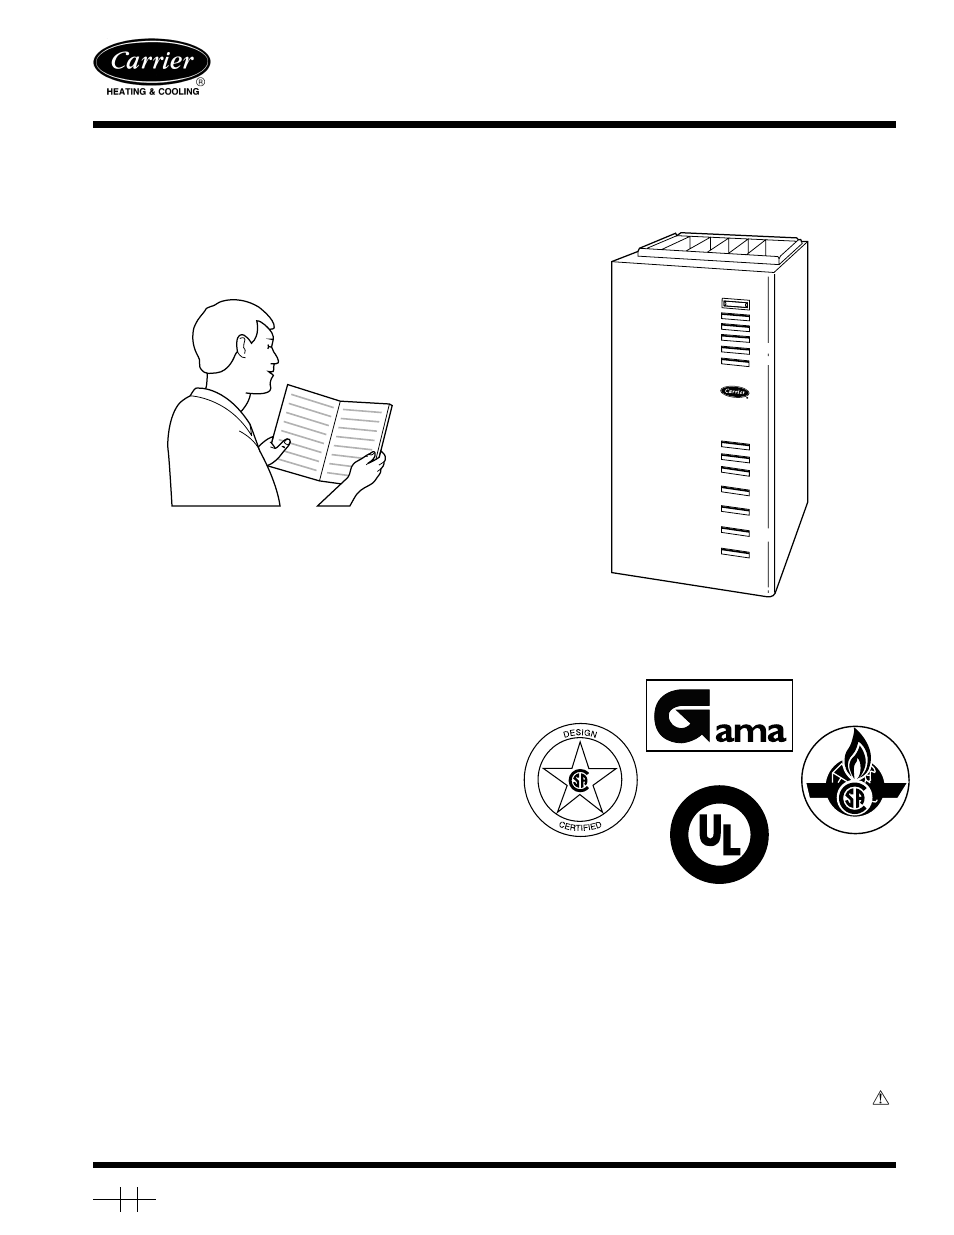 Carrier 58msa User Manual